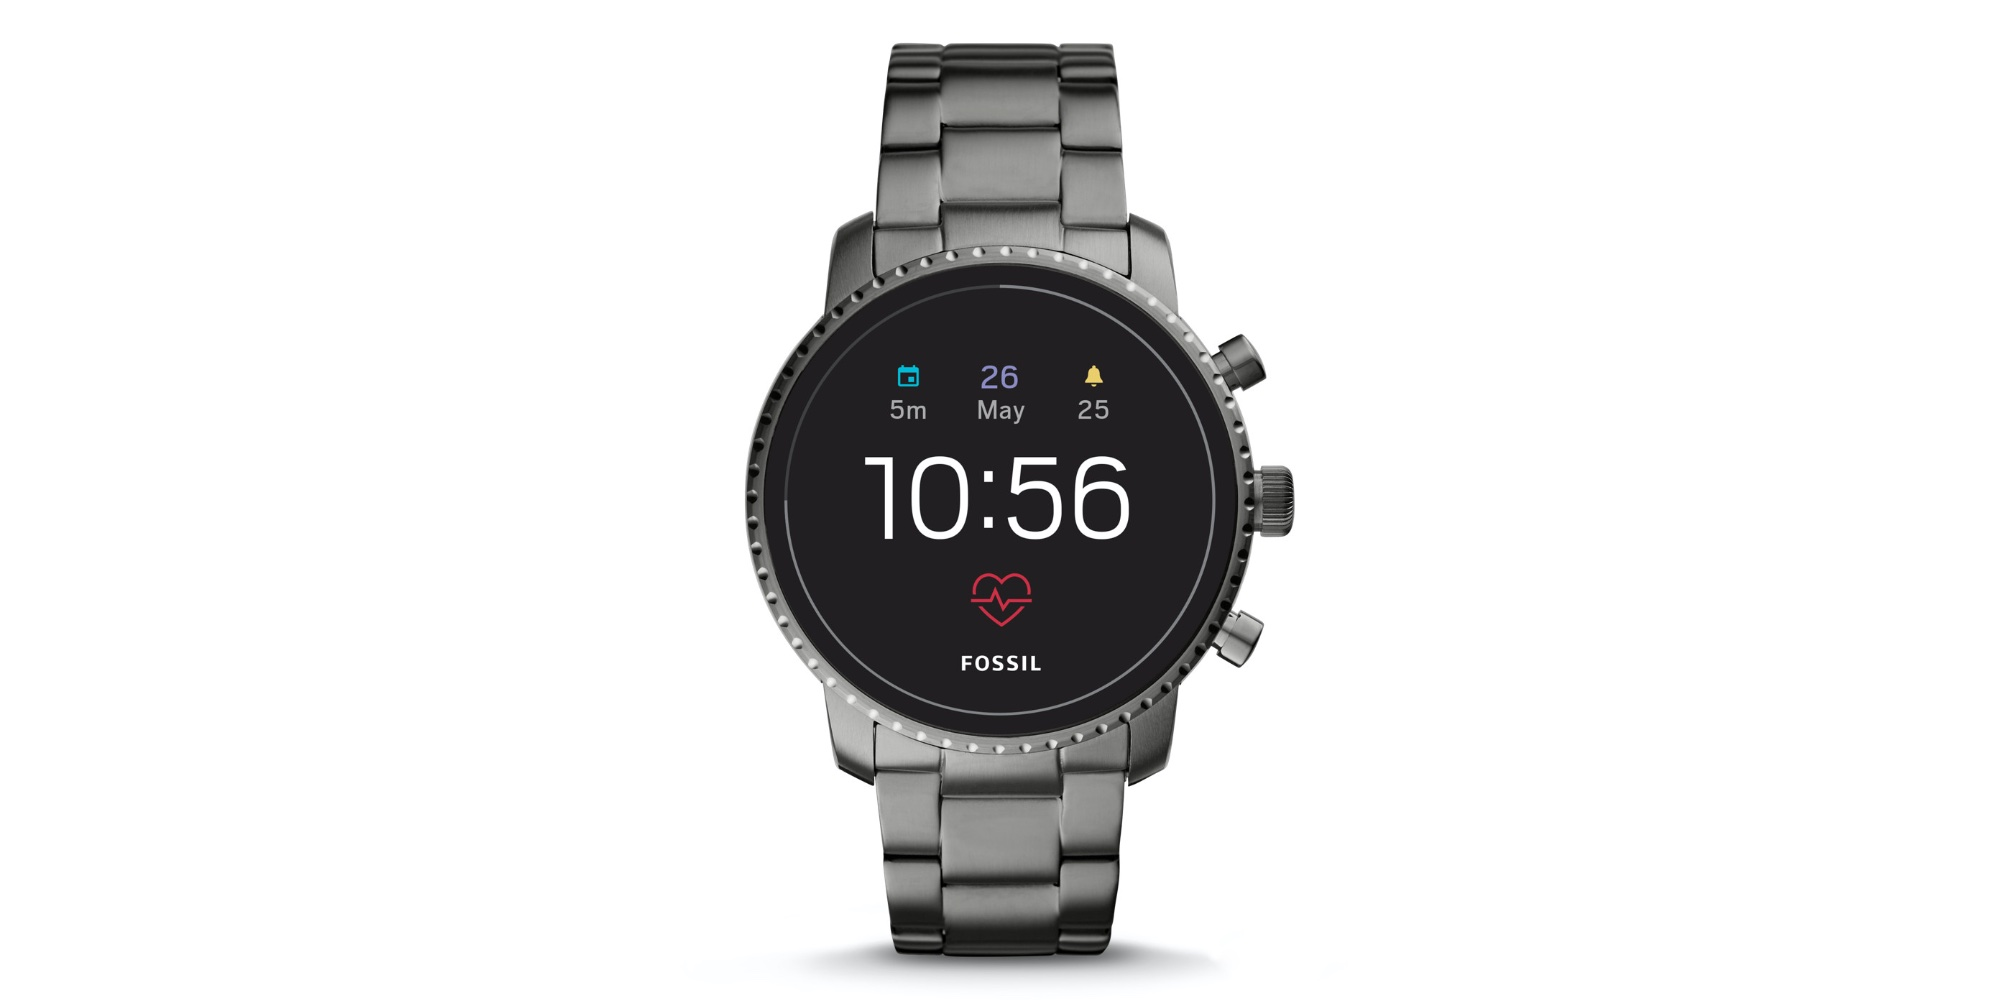 Adorn your wrist with Fossil's $129 stainless steel HR smartwatch (Save $50)